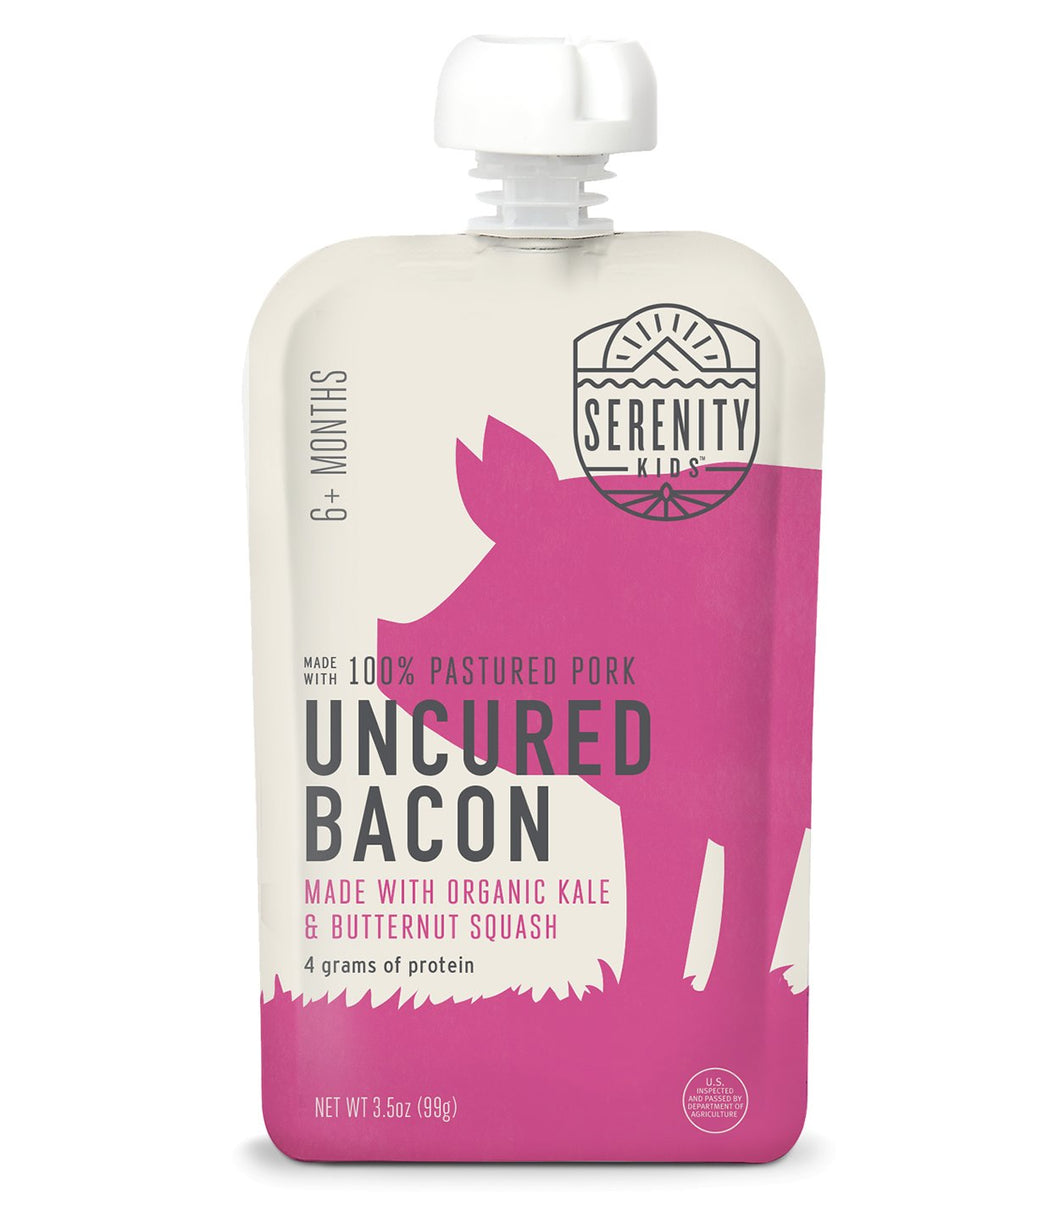 Organic Puree: Uncured Bacon with Kale & Butternut Squash (6M) (3.5 oz)